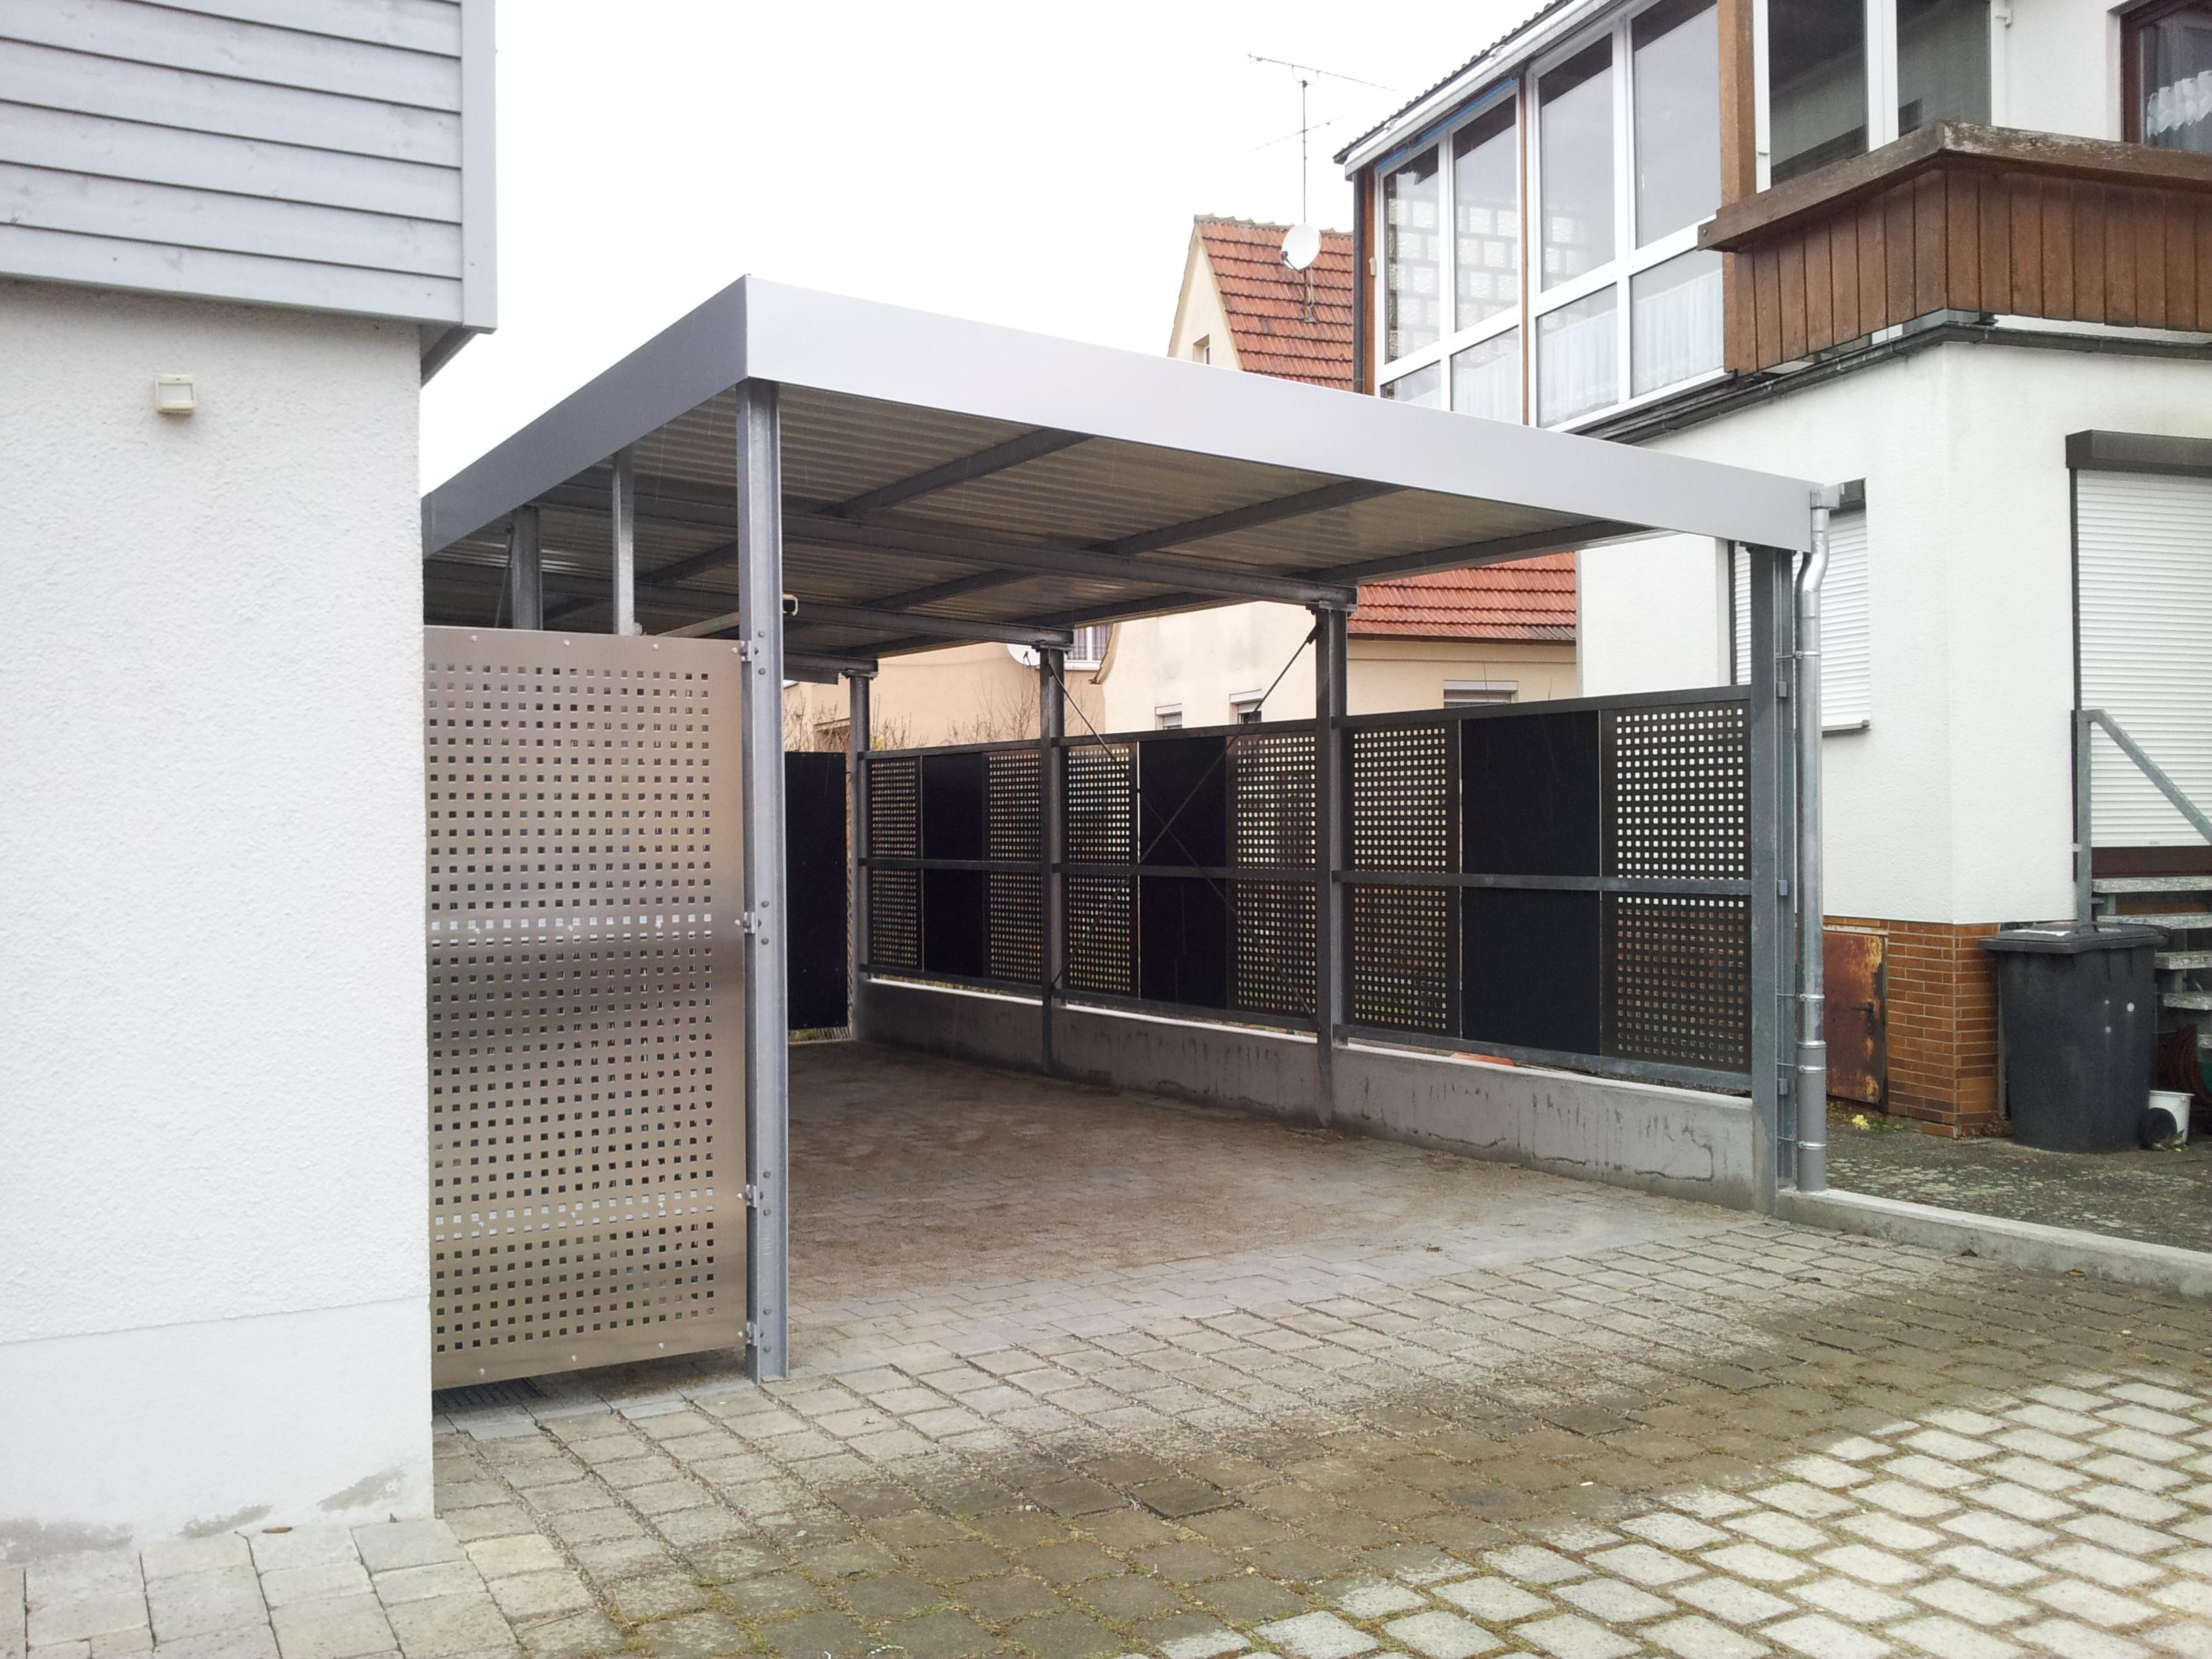 carport mit abstellraum lochblechverkleidung stahlbau n gele. Black Bedroom Furniture Sets. Home Design Ideas